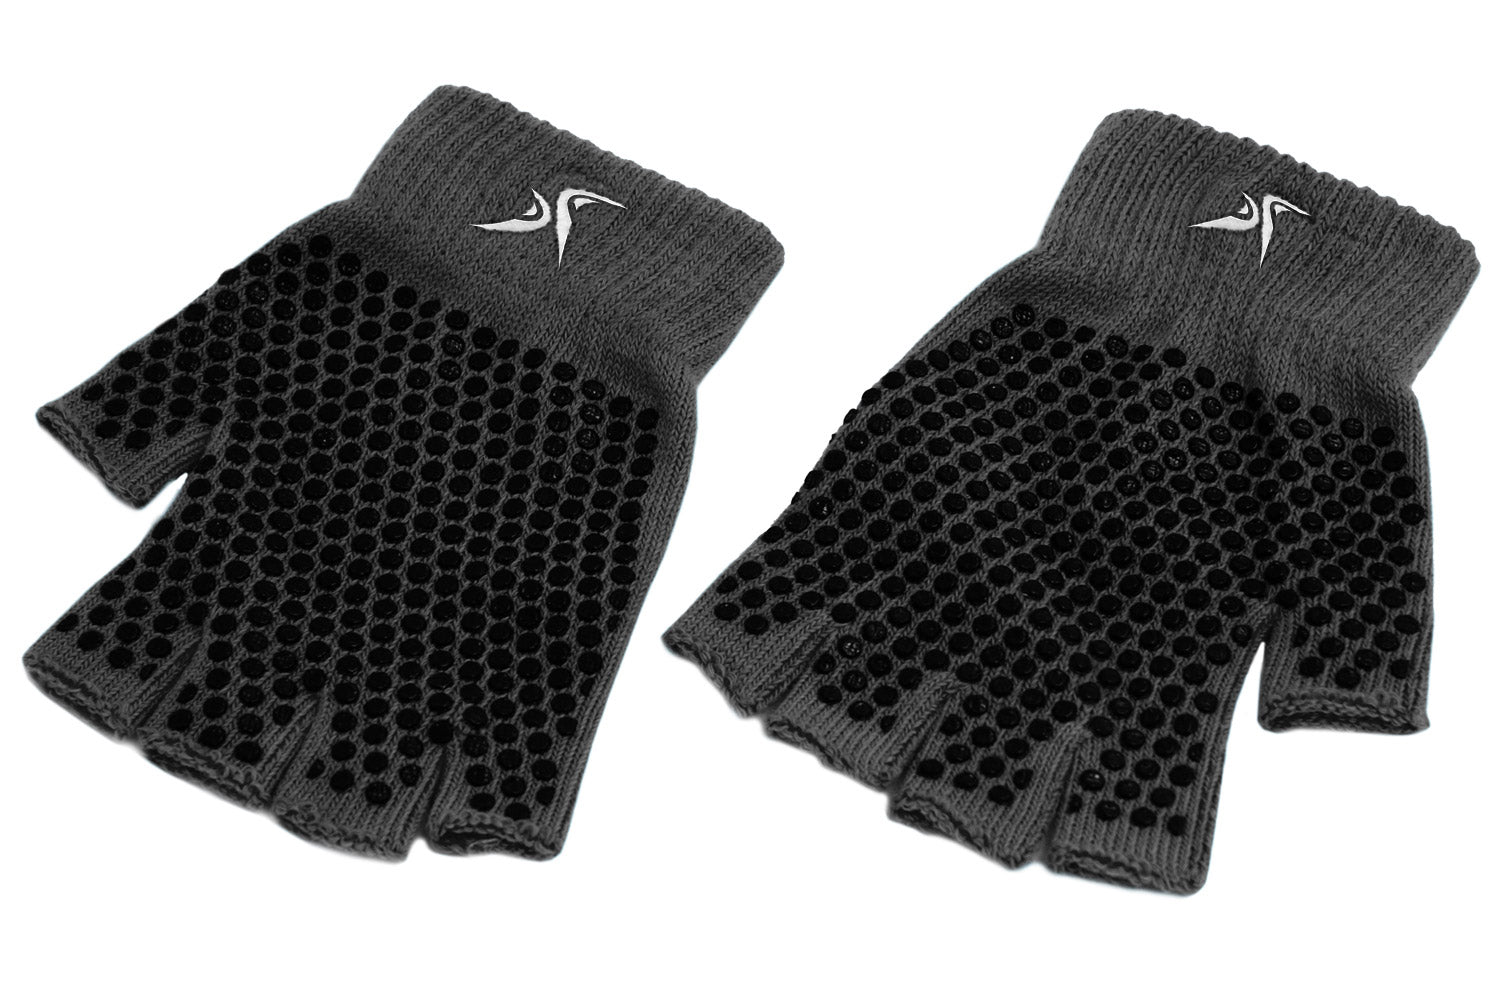 Black Grippy Yoga Gloves